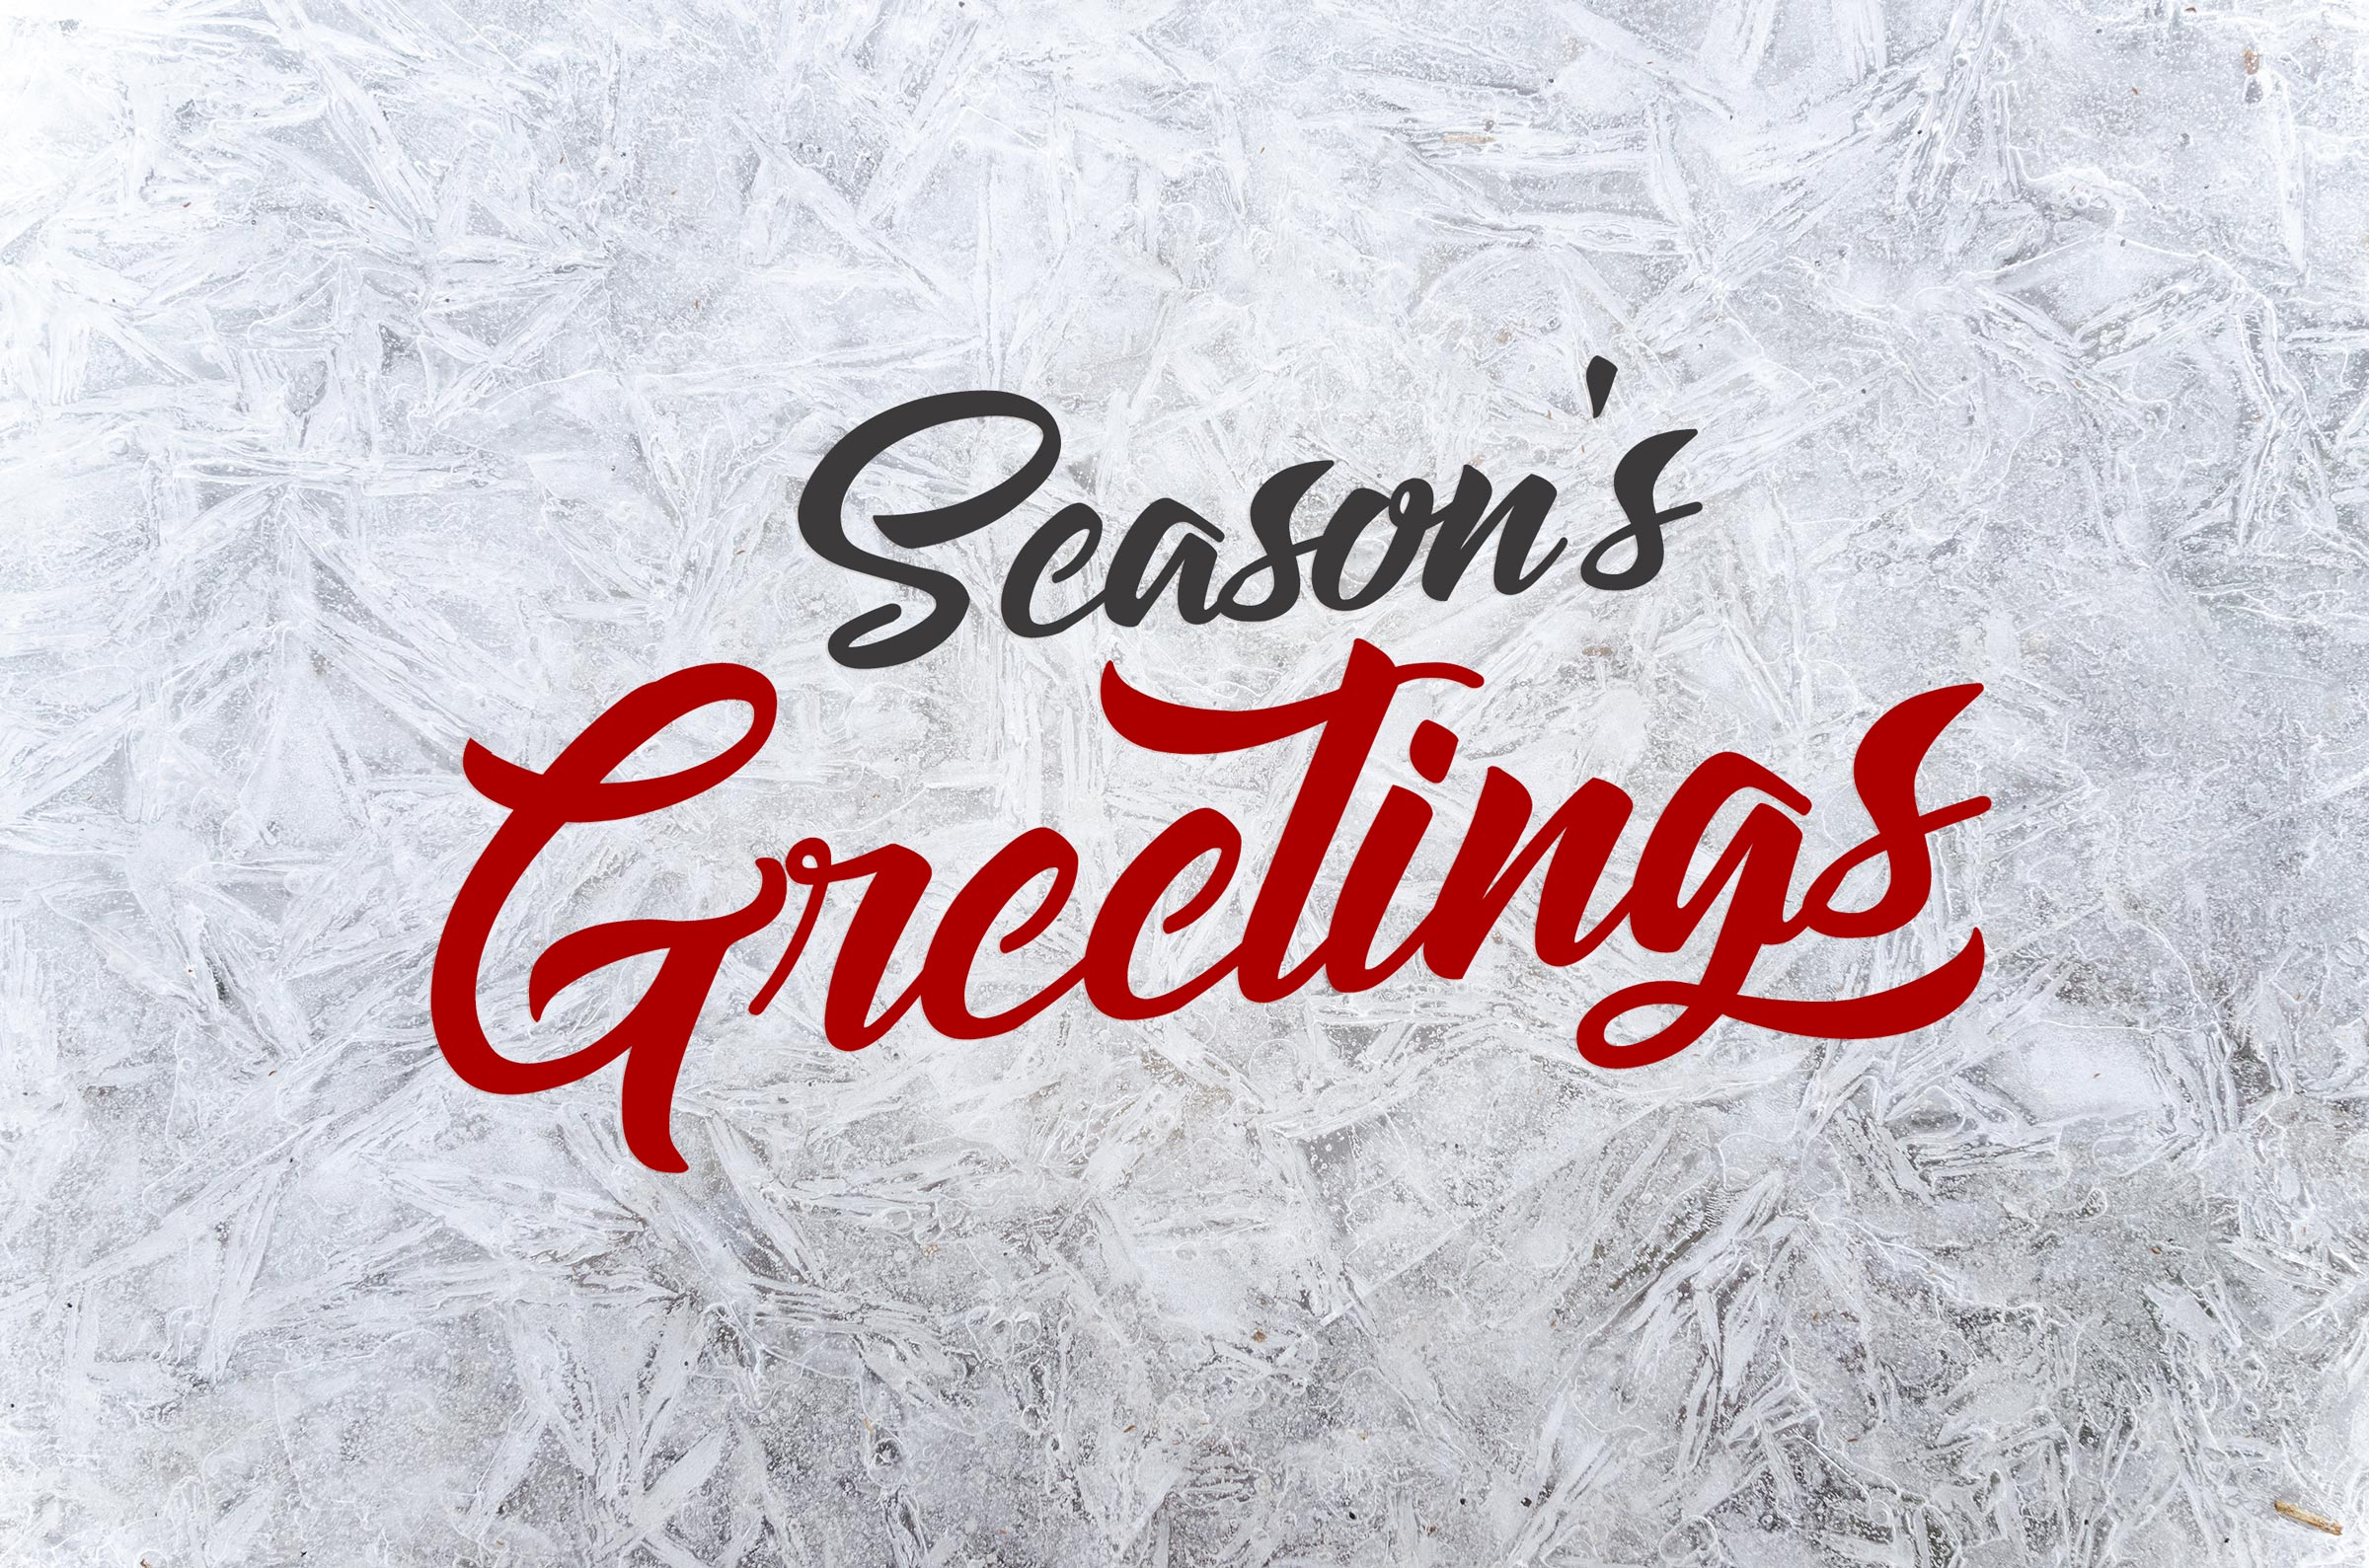 15 Seasons Greetings Cards Stock Images HD Wallpapers Winter 2400x1589